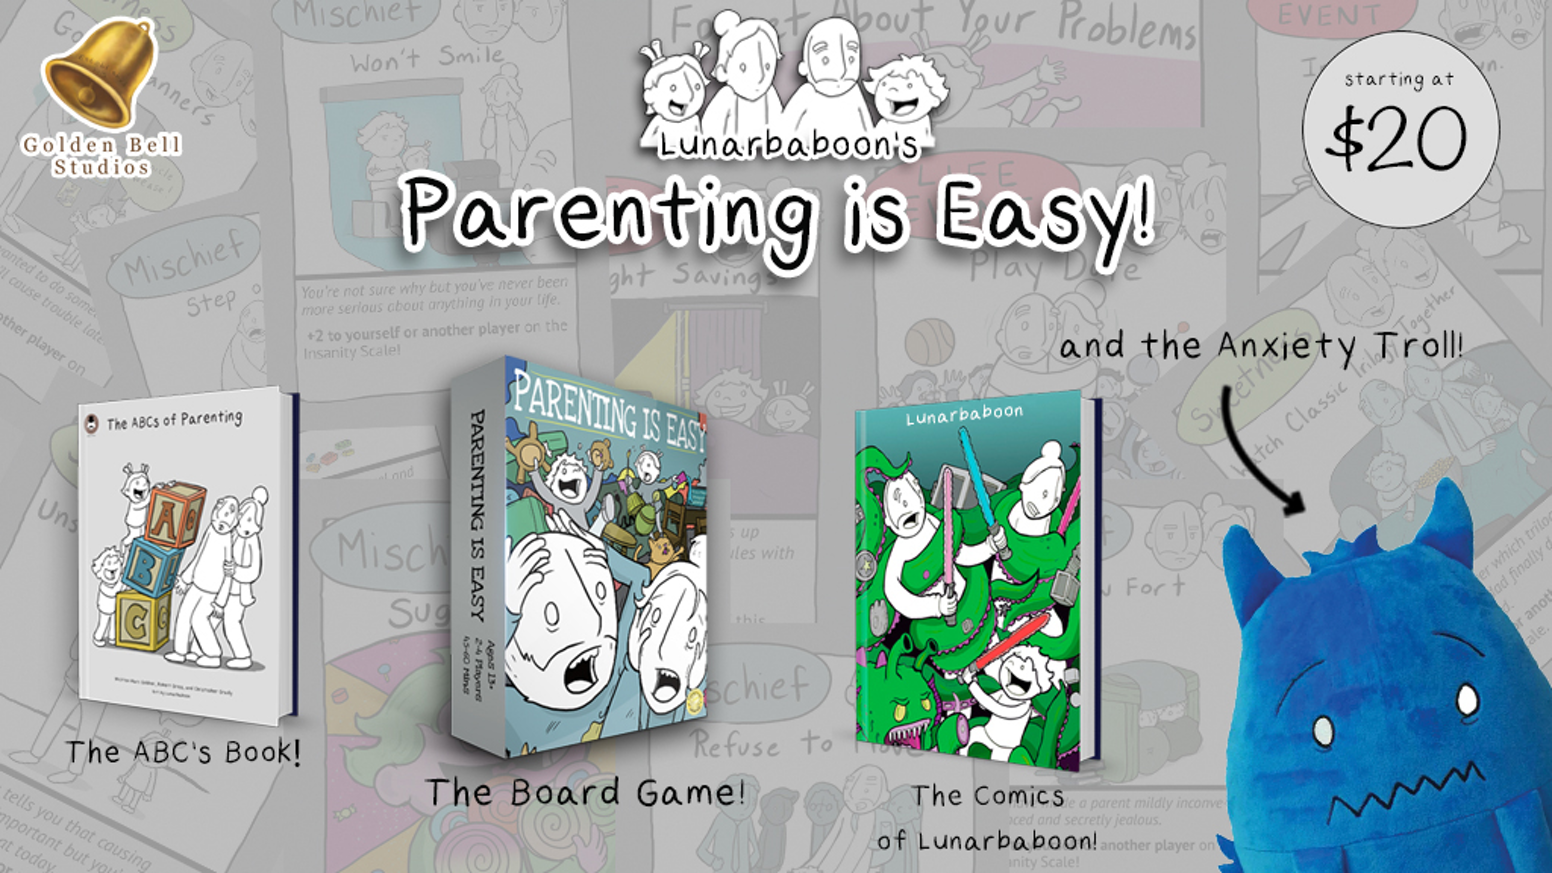 Lunarbaboon returns for a 3rd time on Kickstarter with a Board Game, Anxiety Troll Plush, Book & Comics to make parenting a lot easier!